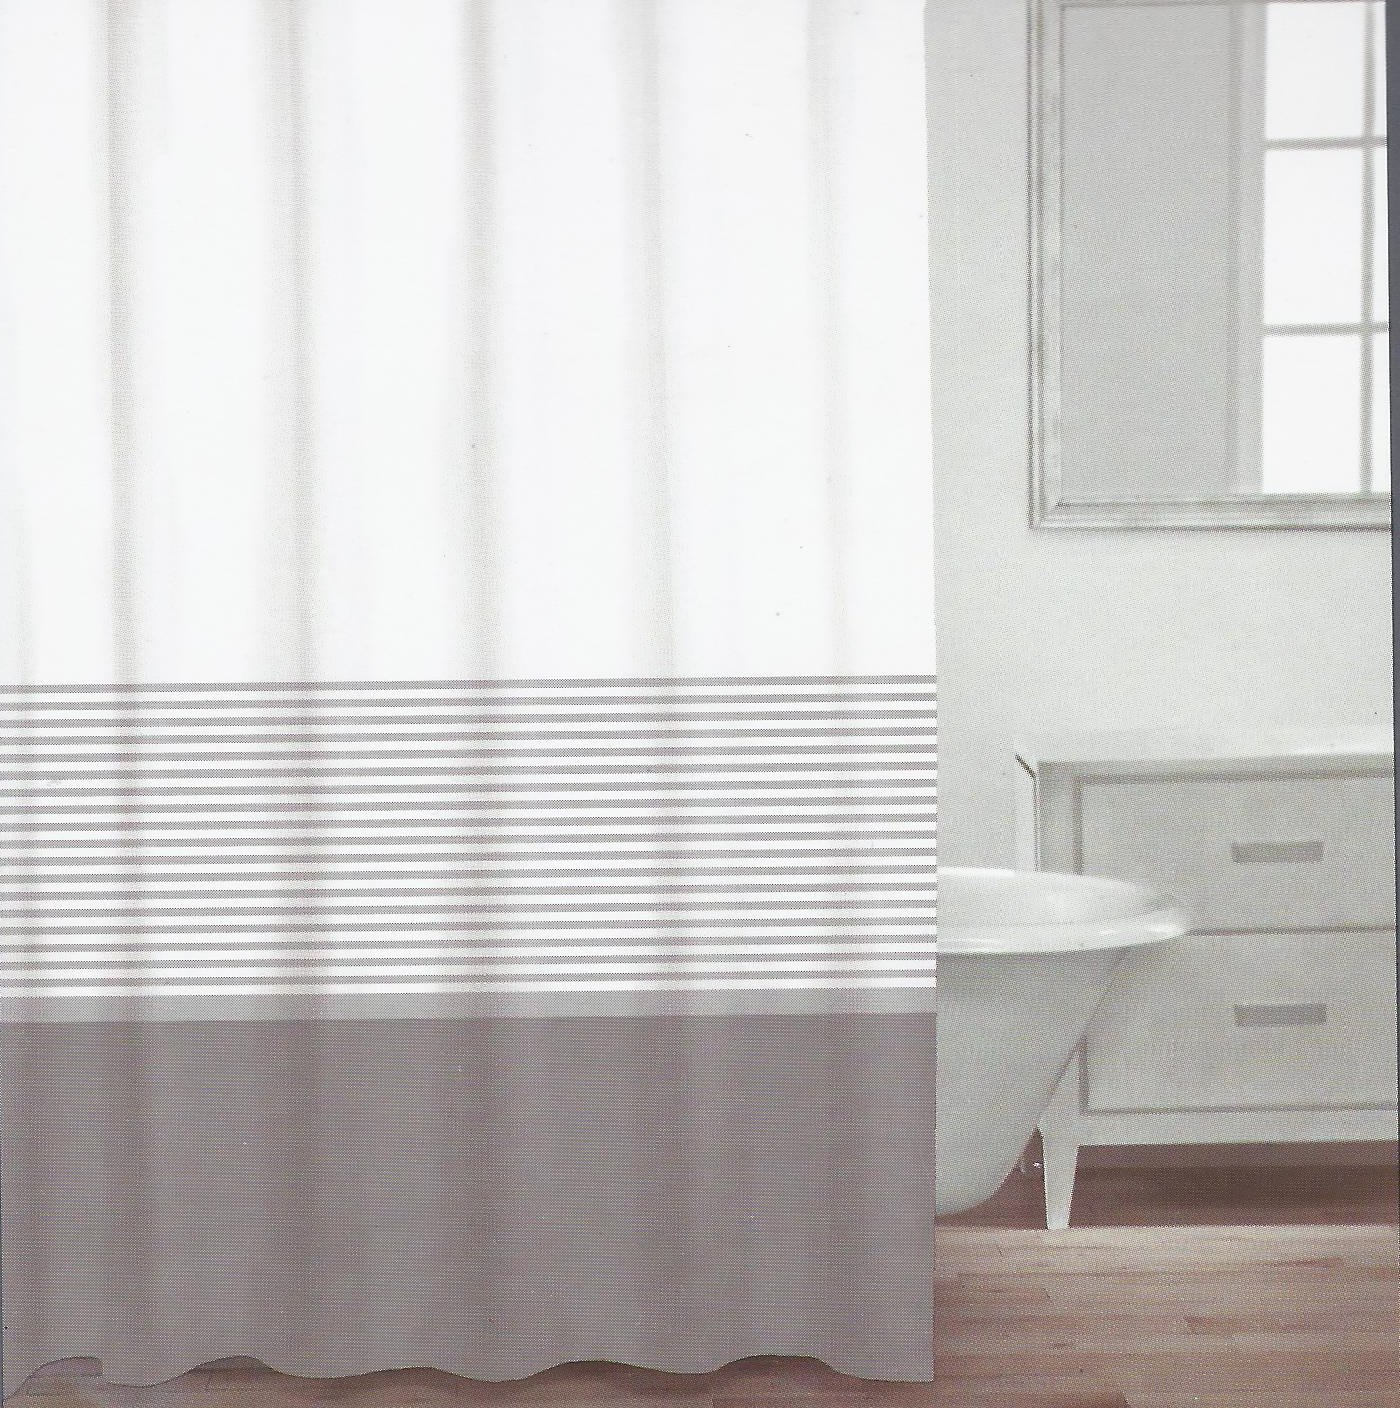 Amazoncom CARO Home Fabric Shower Curtain Grey White And - Beige and gray shower curtain